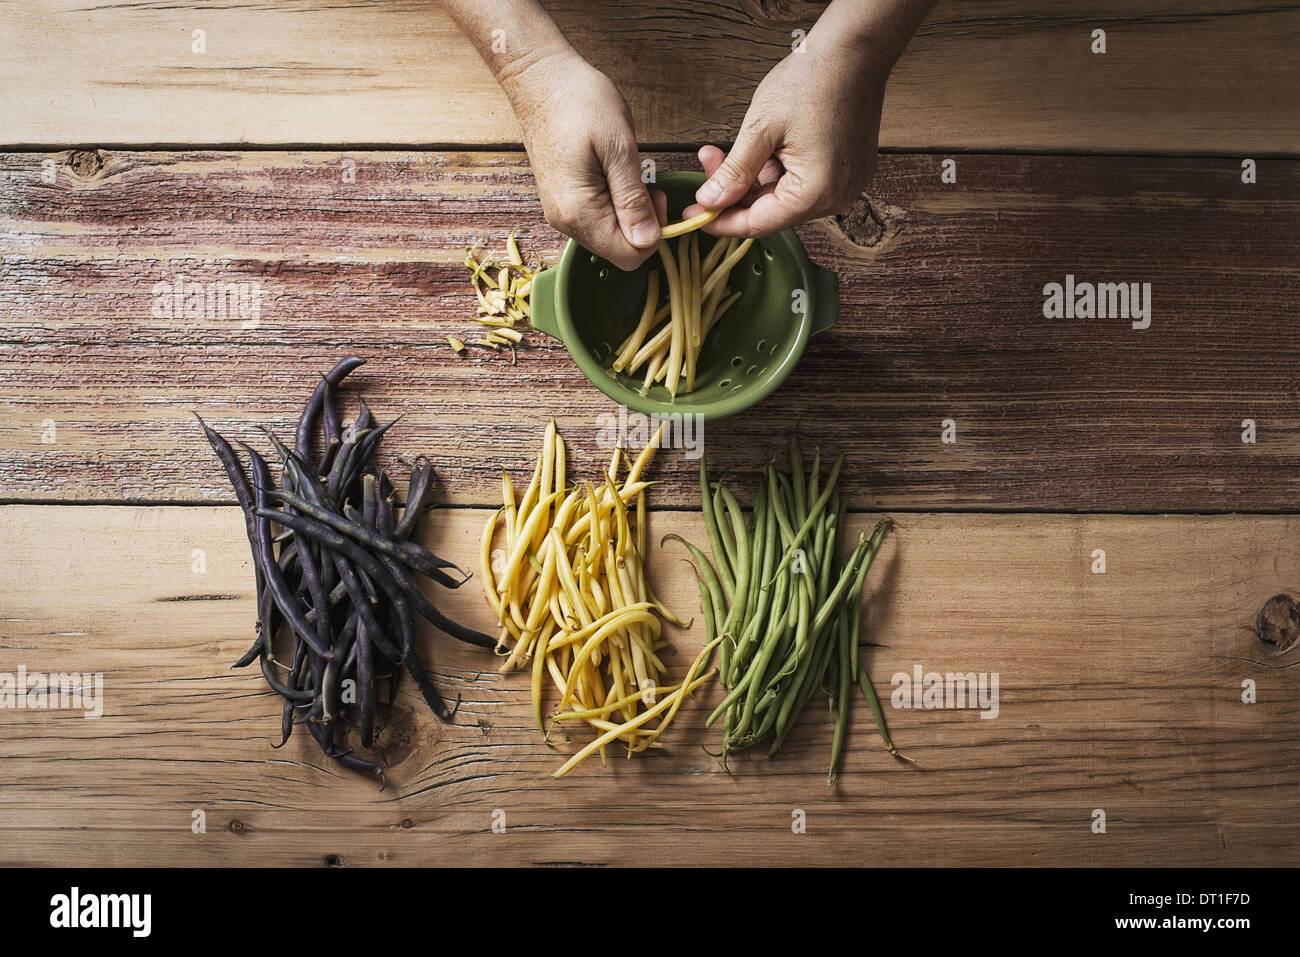 Organic green yellow and black haricot beans fresh vegetables being topped and tailed by a person before cooking - Stock Image